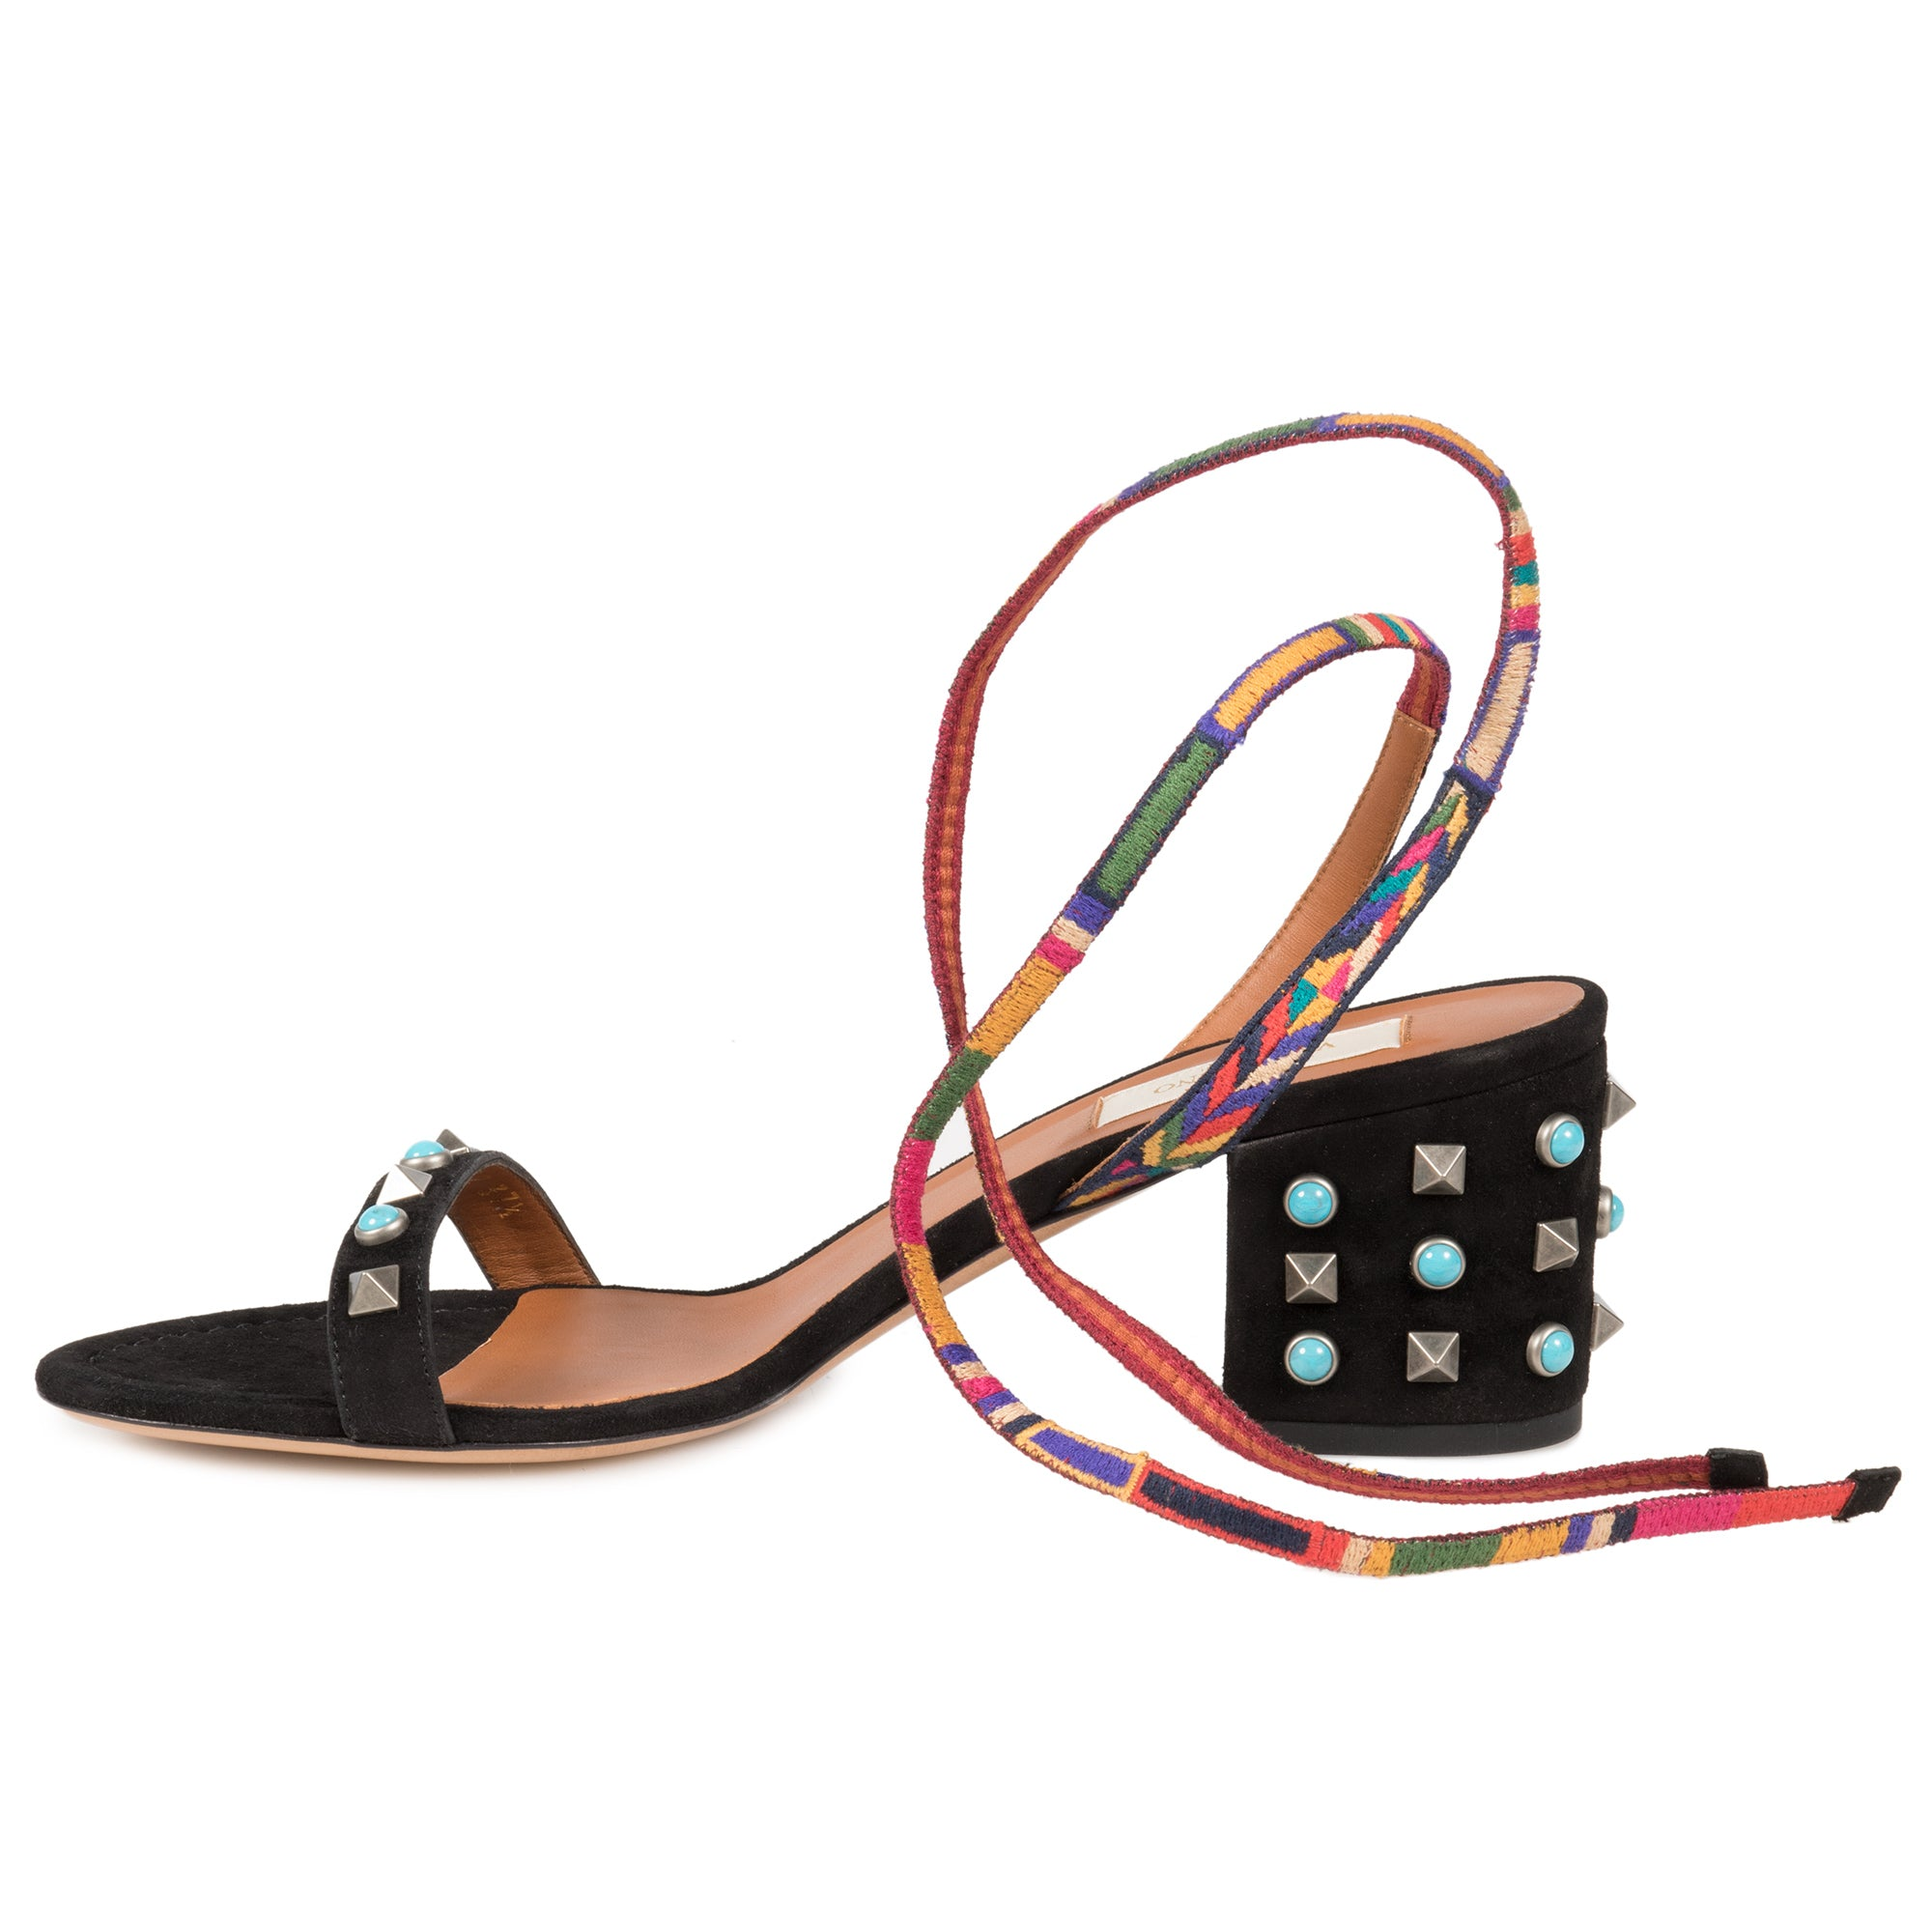 Valentino Black Suede Multicolored Rockstud Sandals